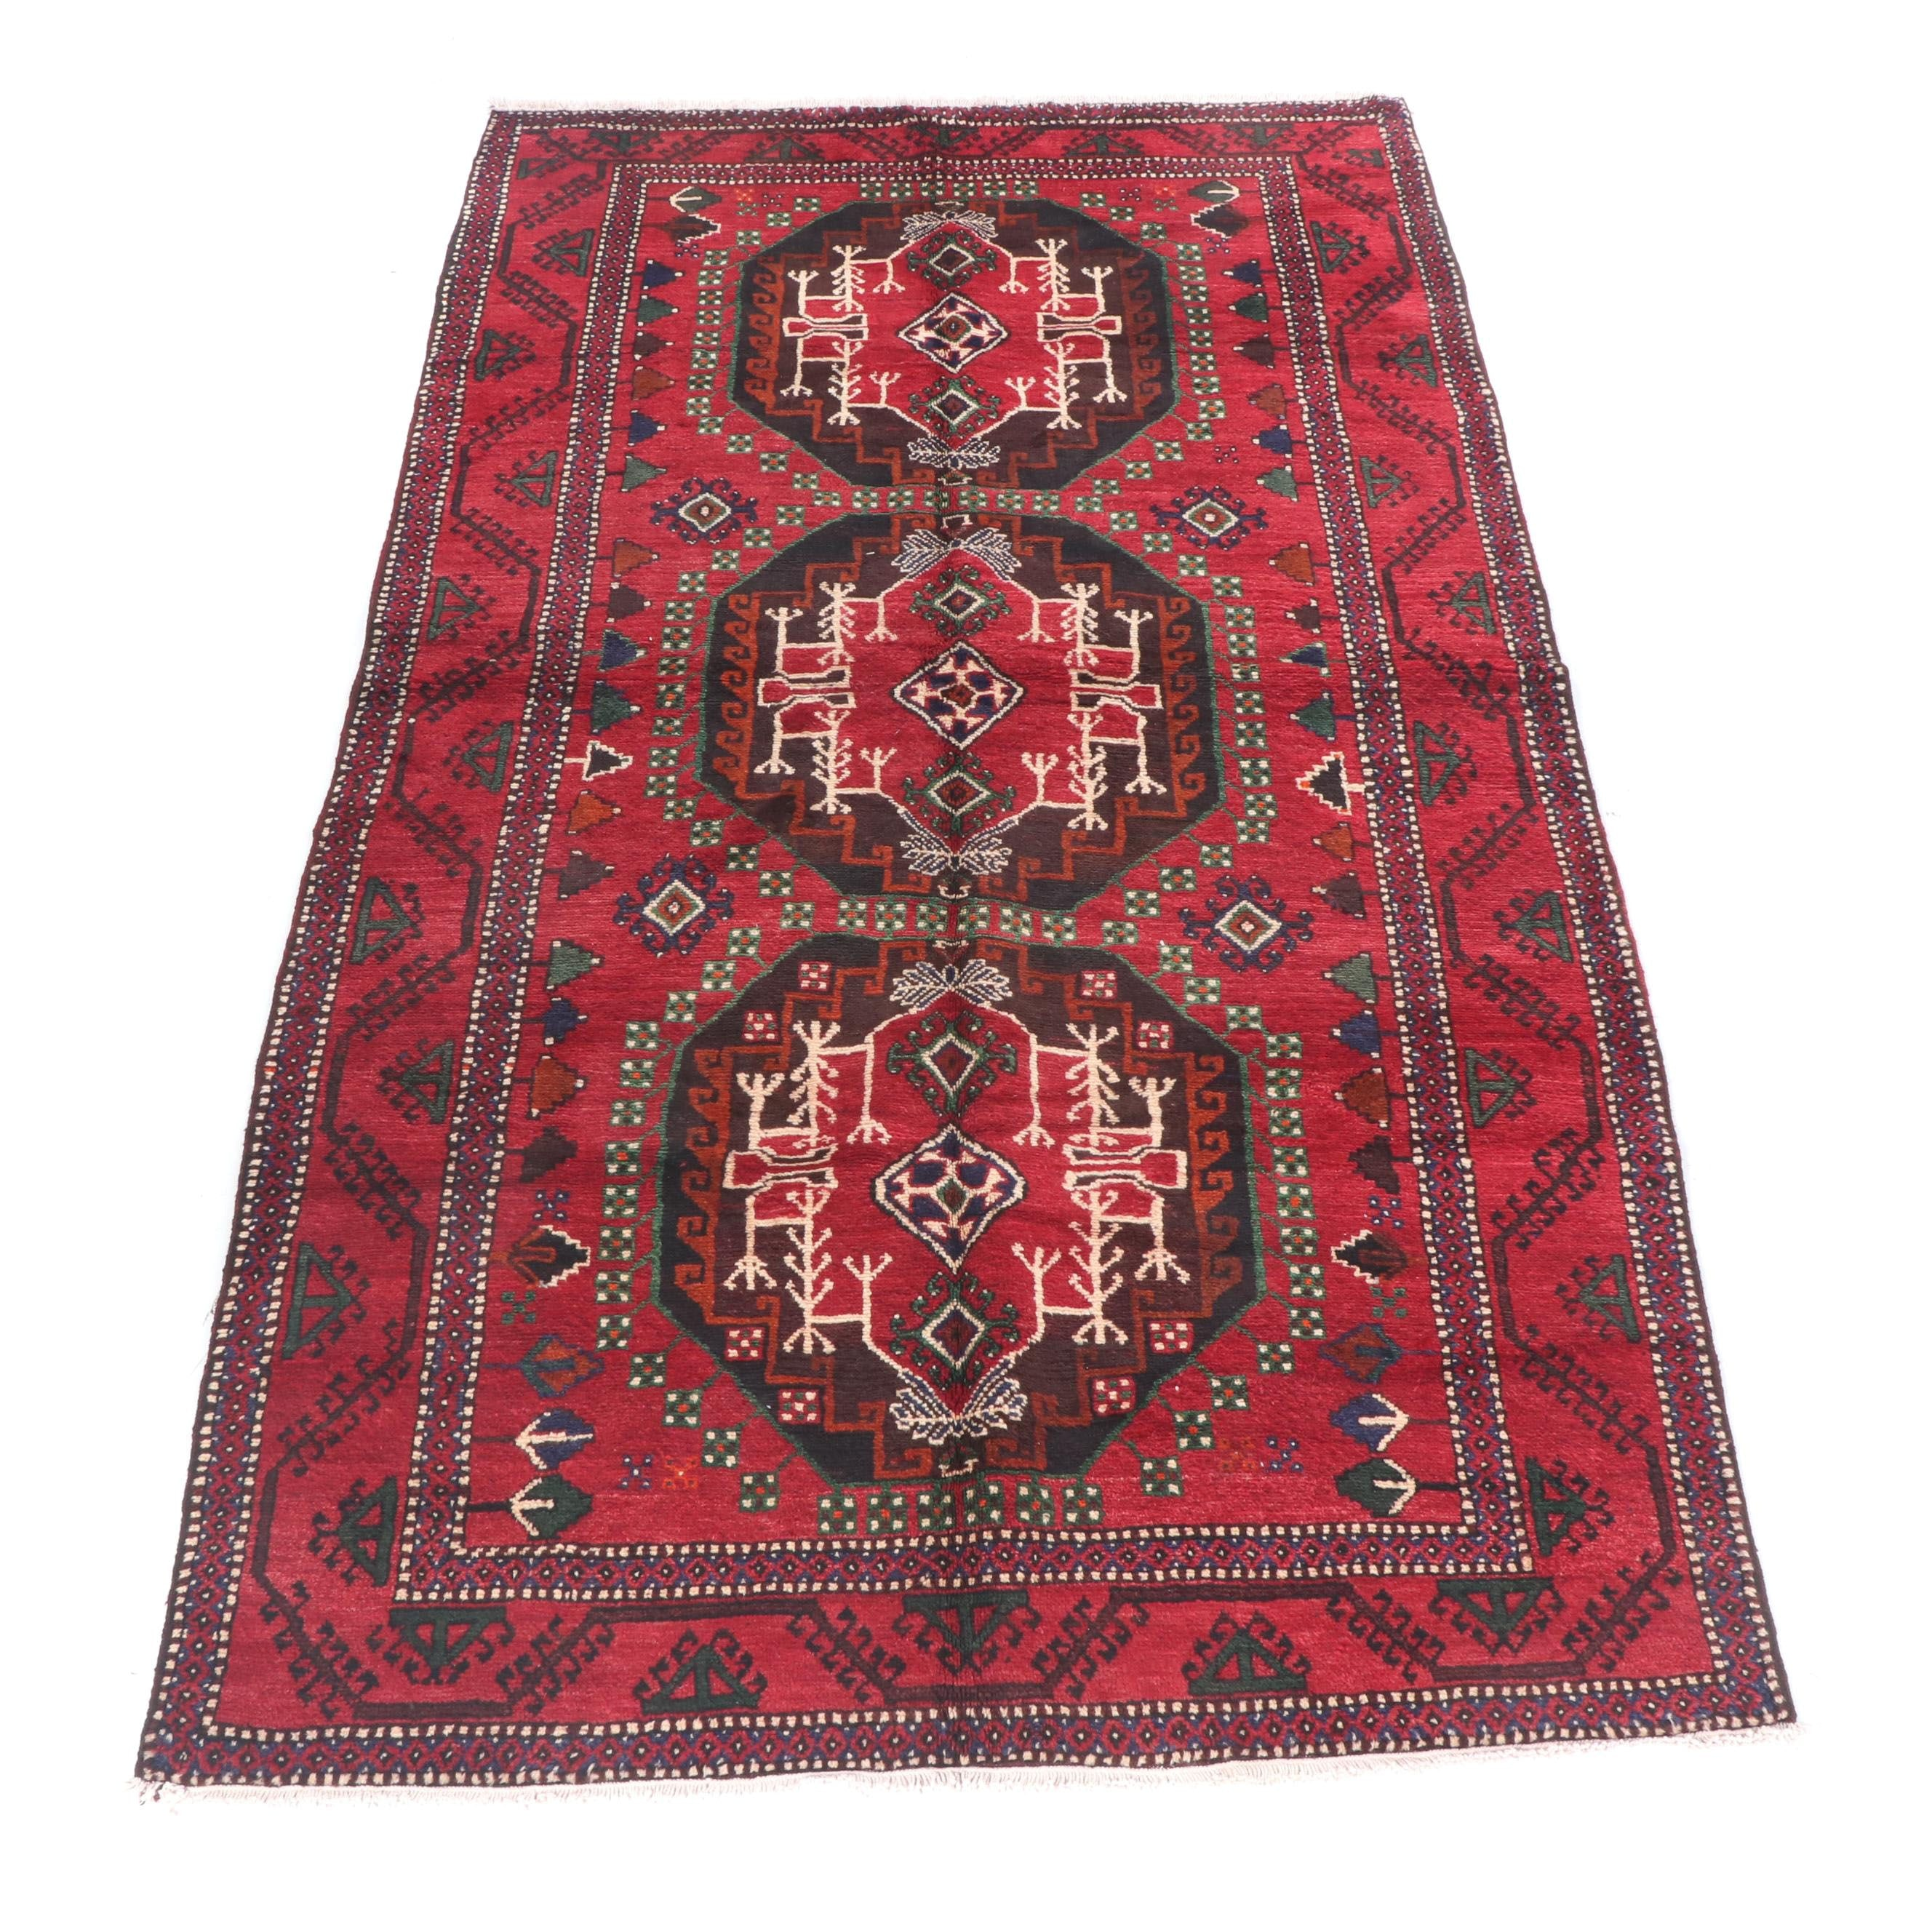 Hand-Knotted Persian Baluch Yomut Wool Rug